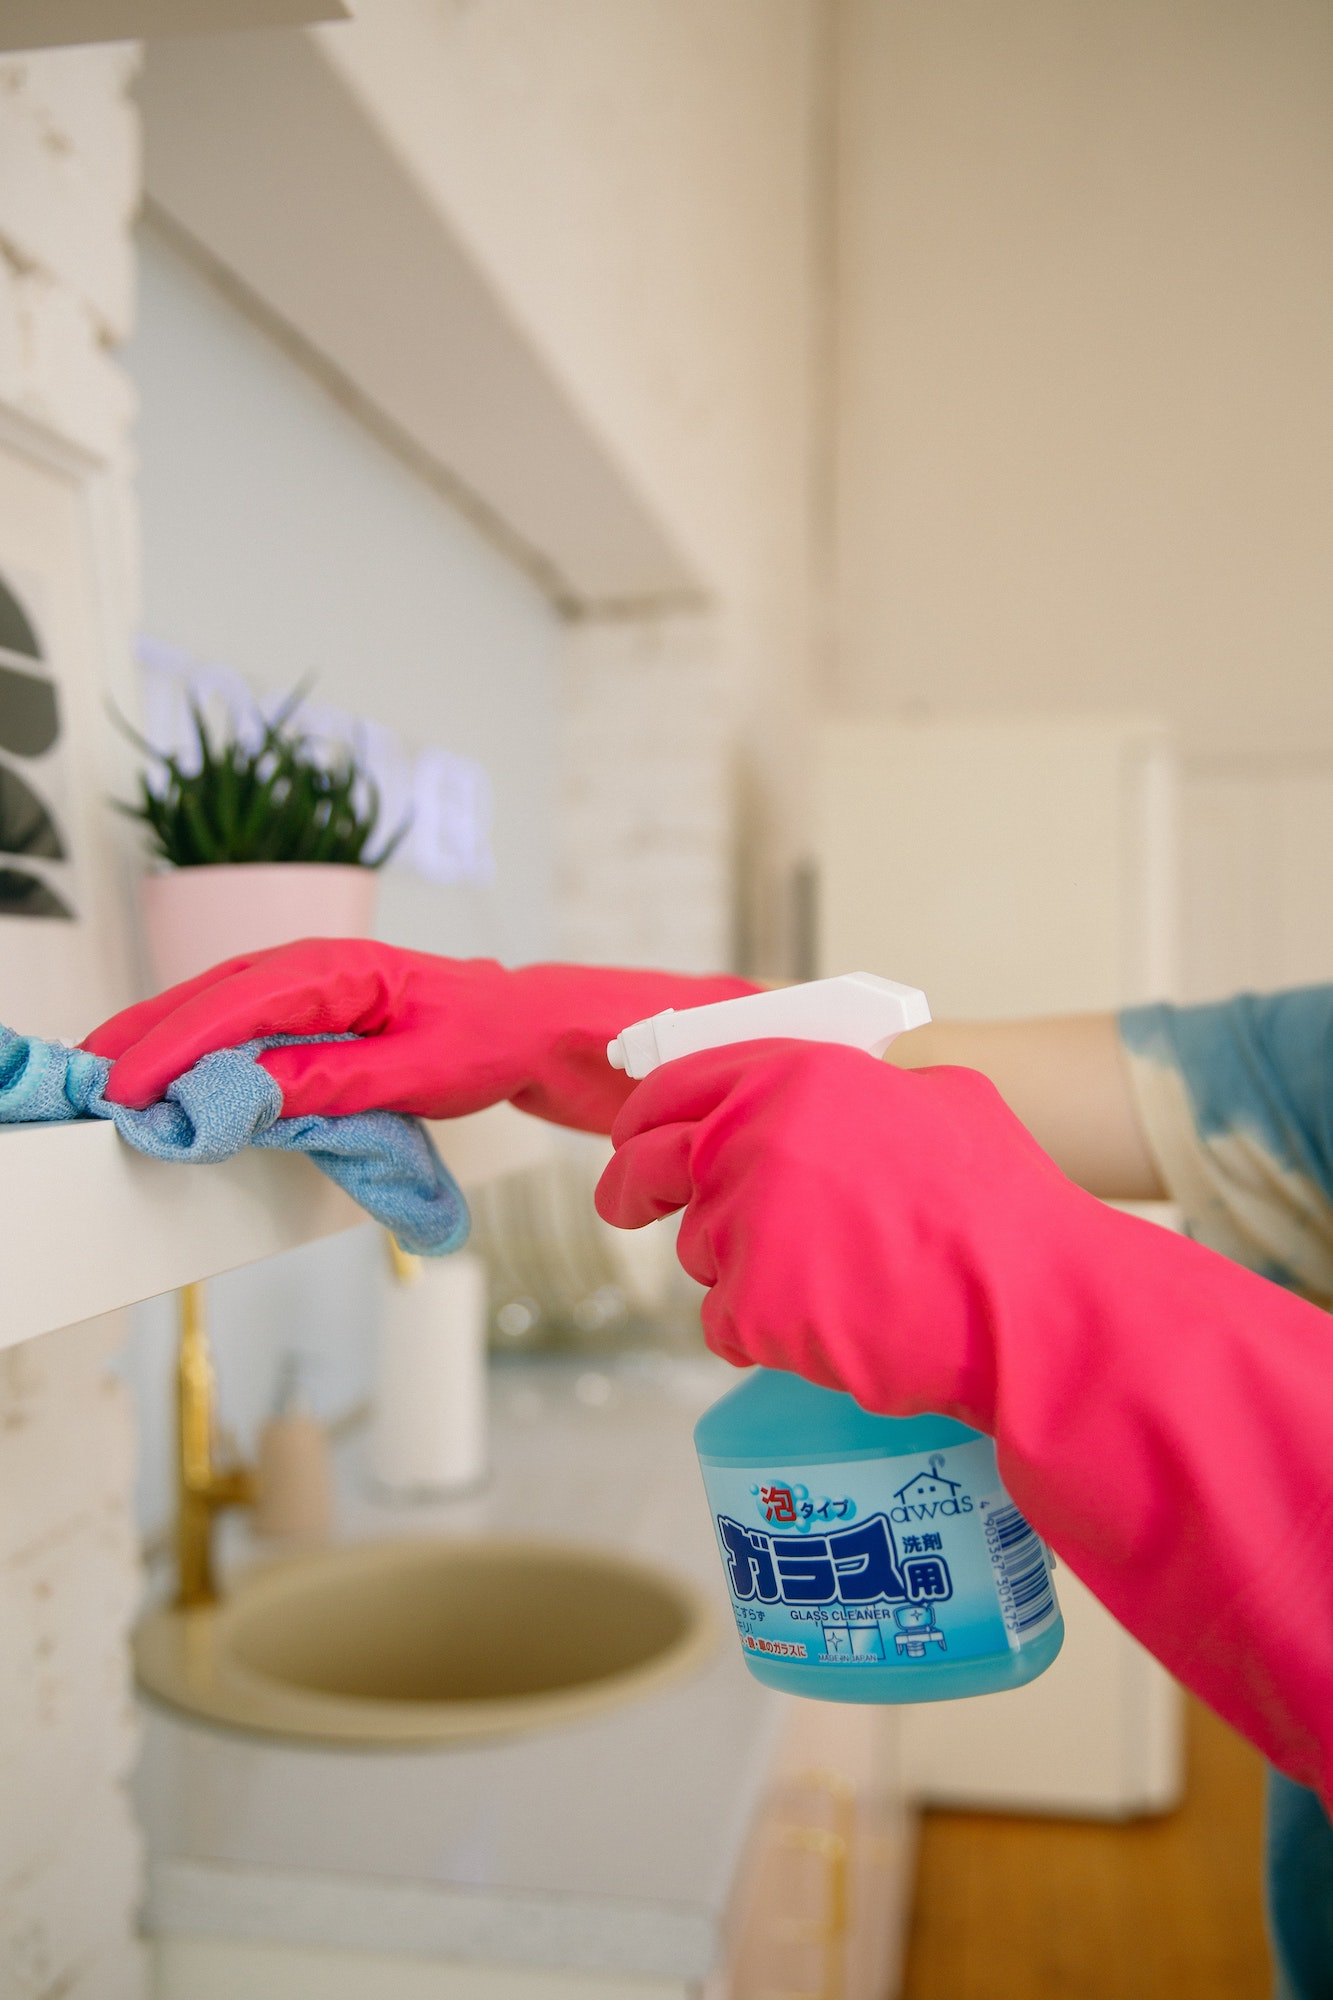 Home Cleaning Tips For A Cleaner Home | Home Interior | Elle Blonde Luxury Lifestyle Destination Blog